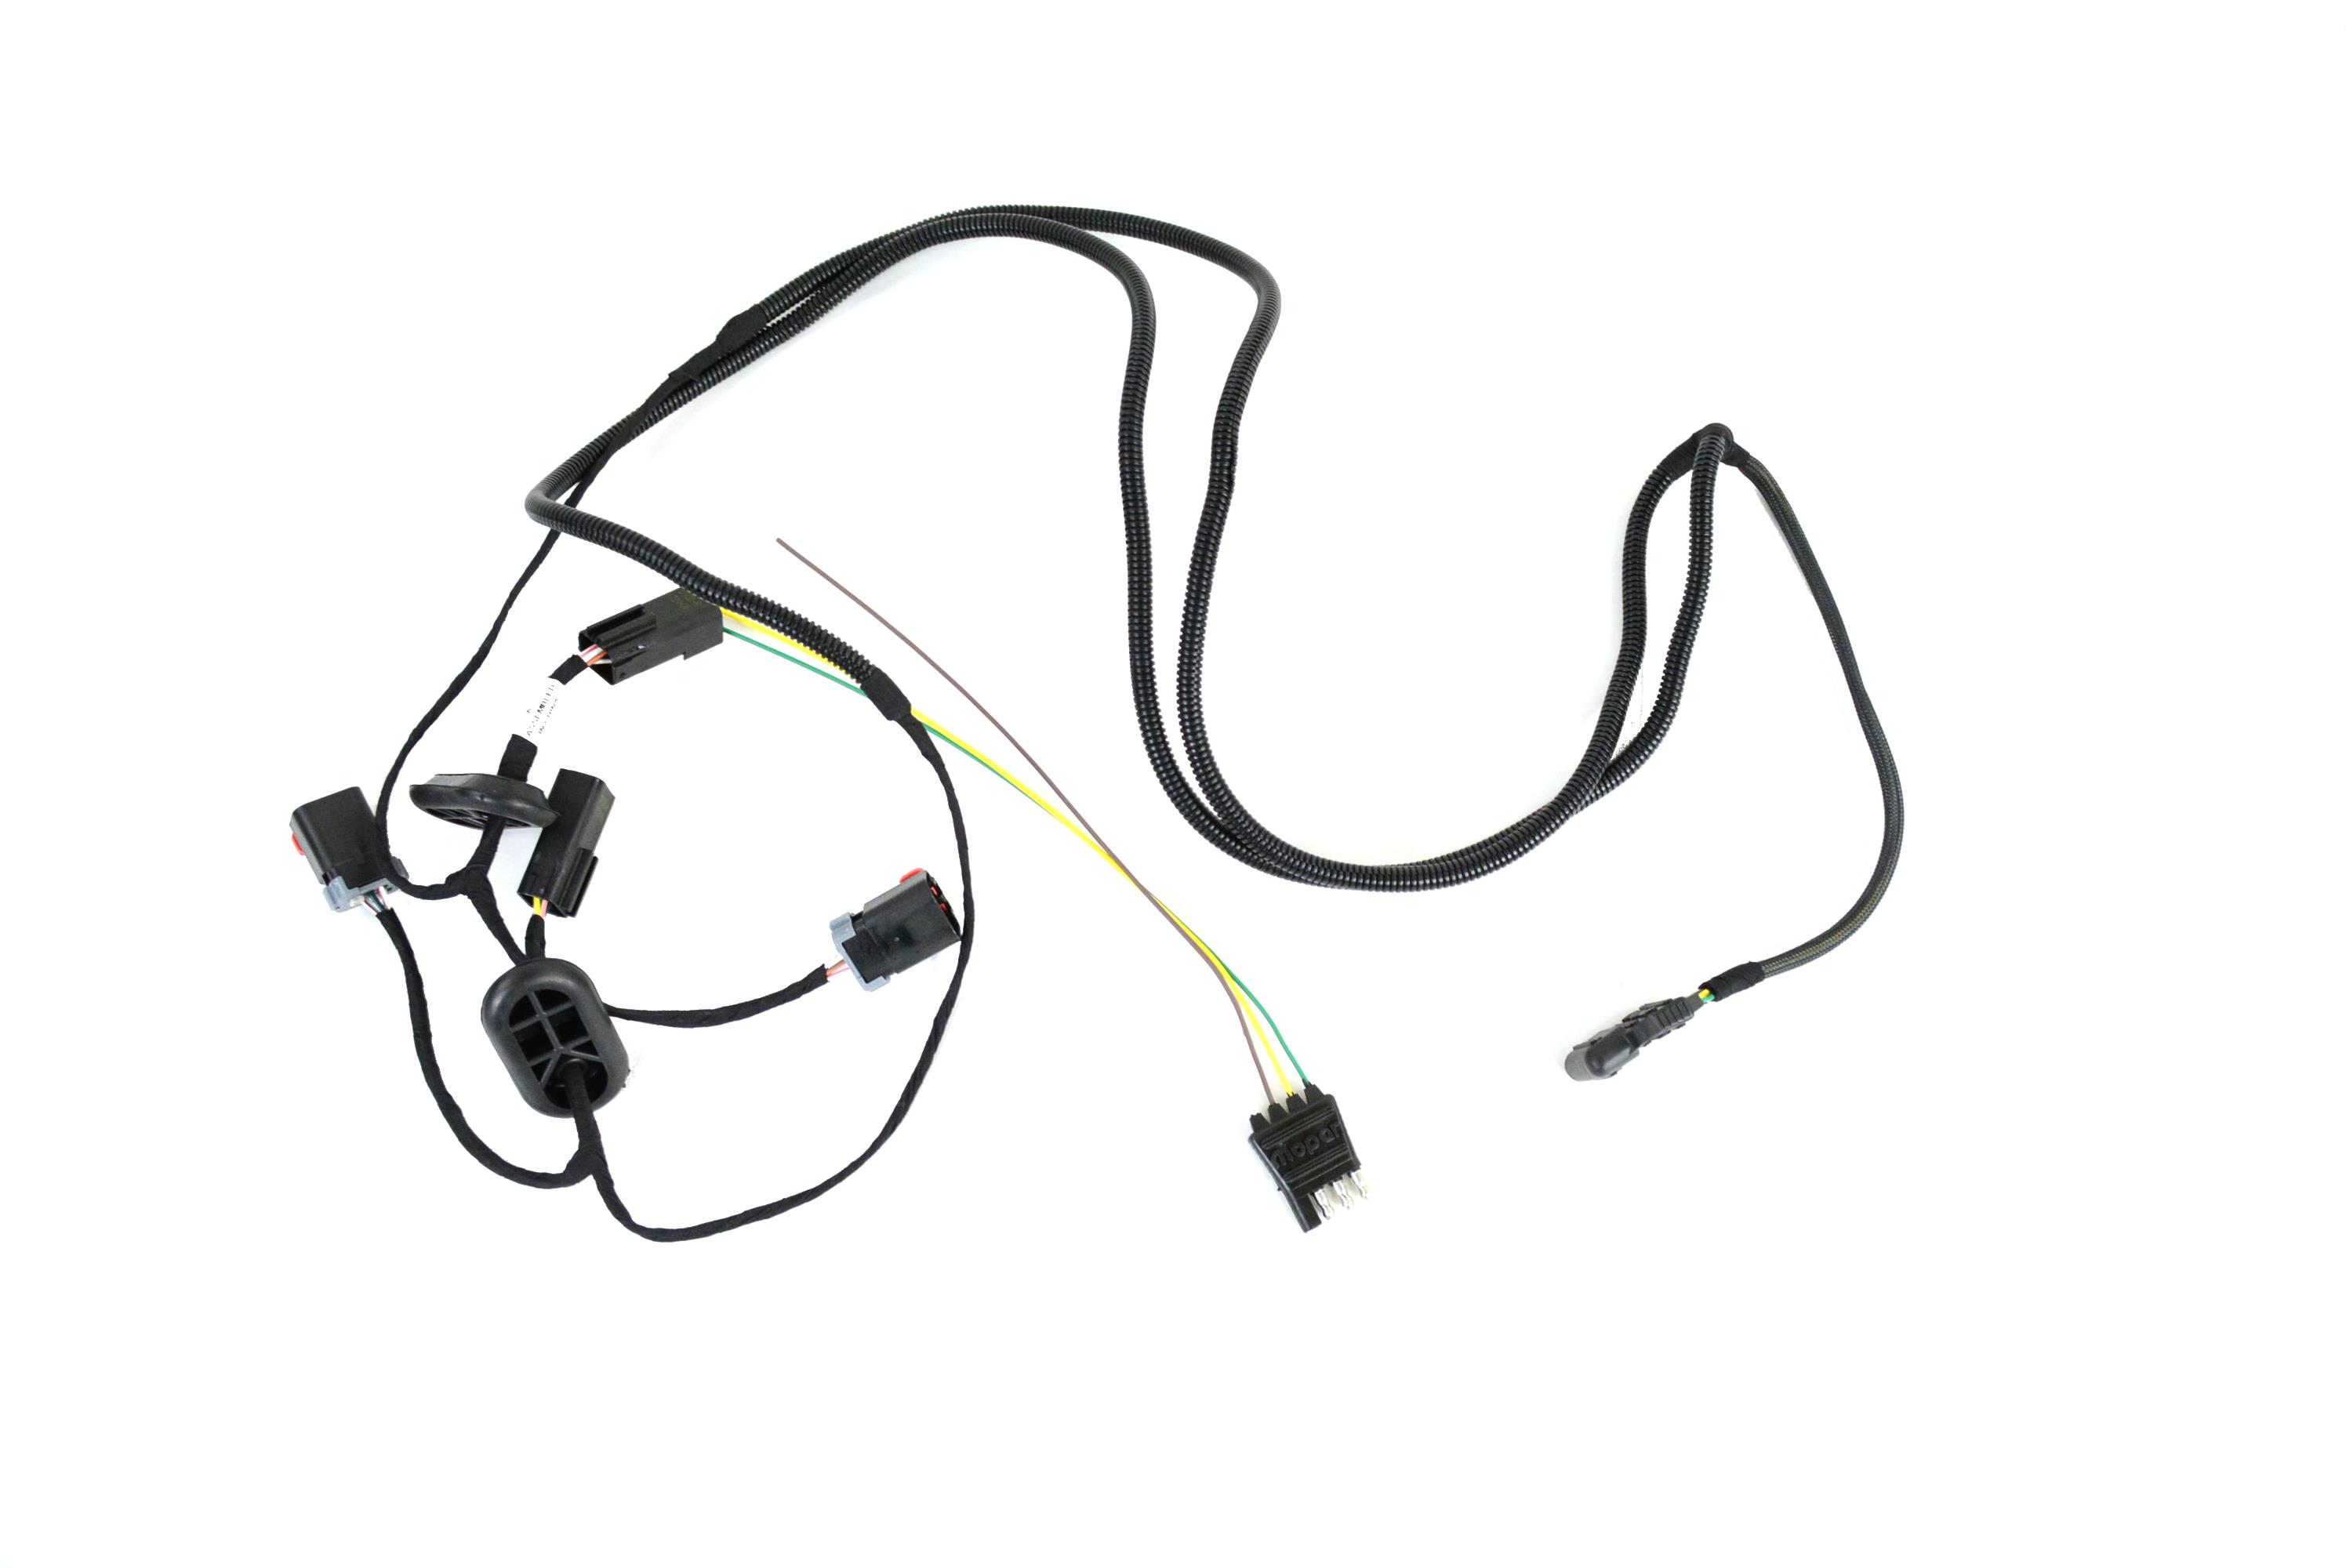 Chrysler Pacifica Trailer Tow Wiring Harness Kit, with 4